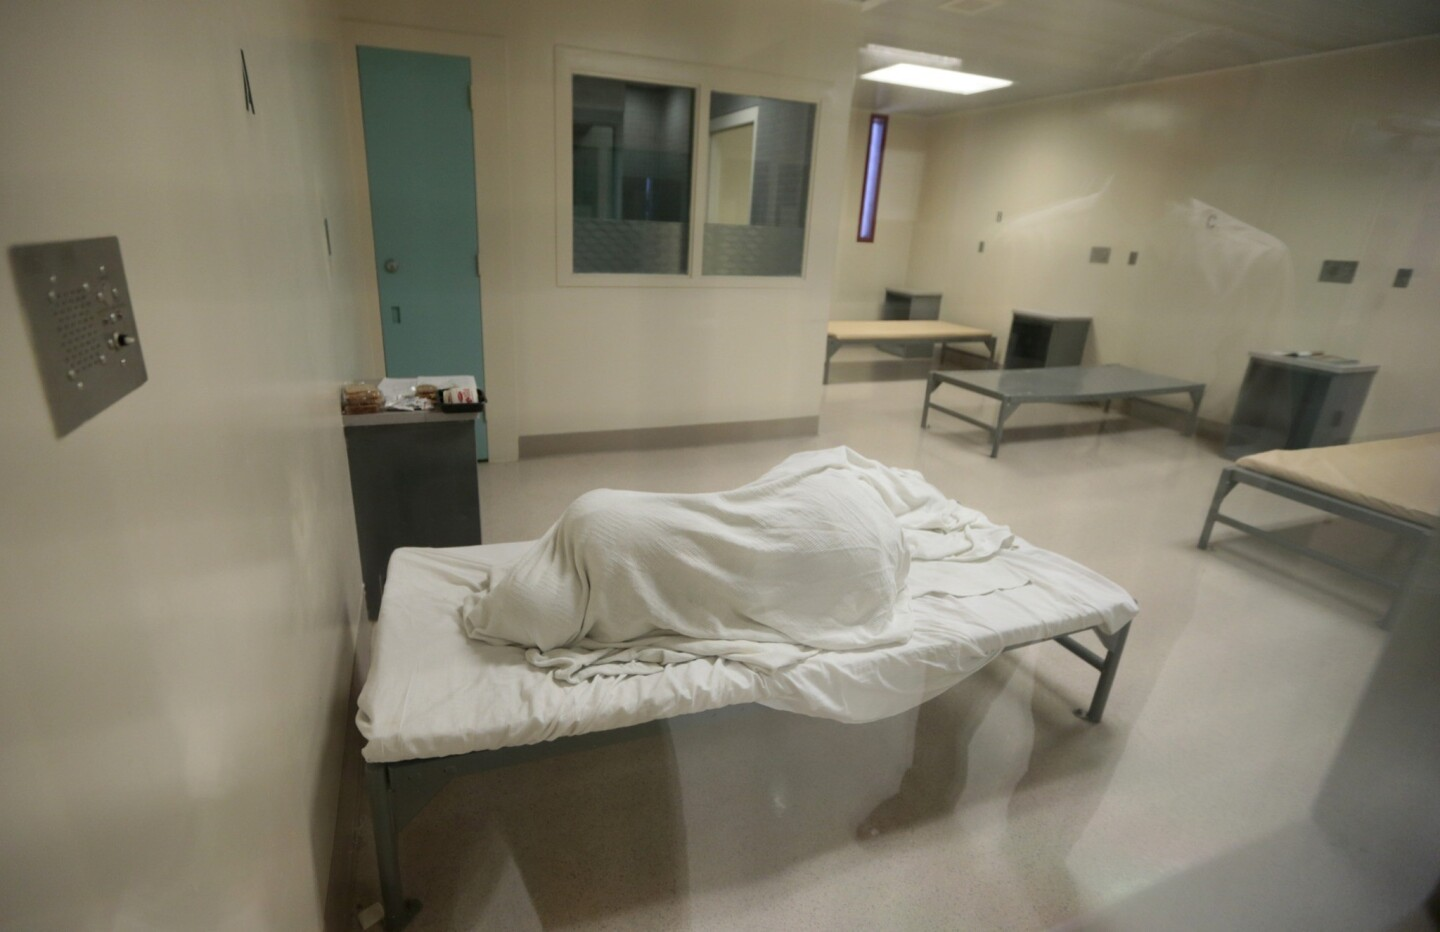 An inmate sleeps in a room on the fourth floor of the medical unit of the Twin Towers jail facility. This area houses inmates with the highest level of need -- both psychiatric and medical.